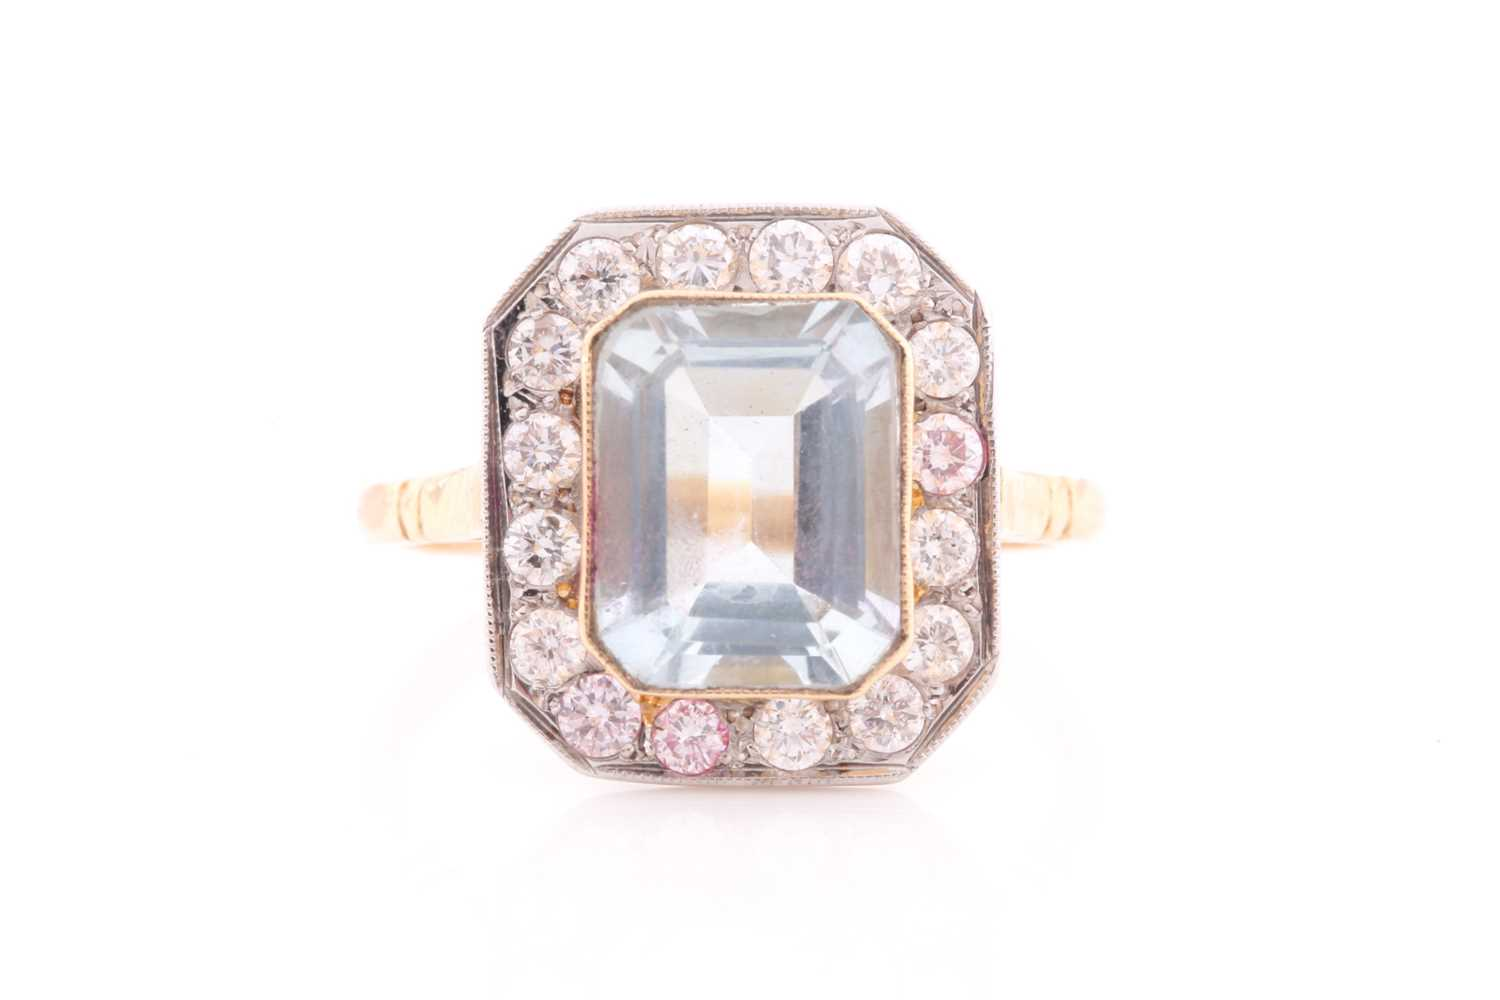 A diamond and aquamarine ring, set with an emerald-cut aquamarine of approximately 2.30 carats,